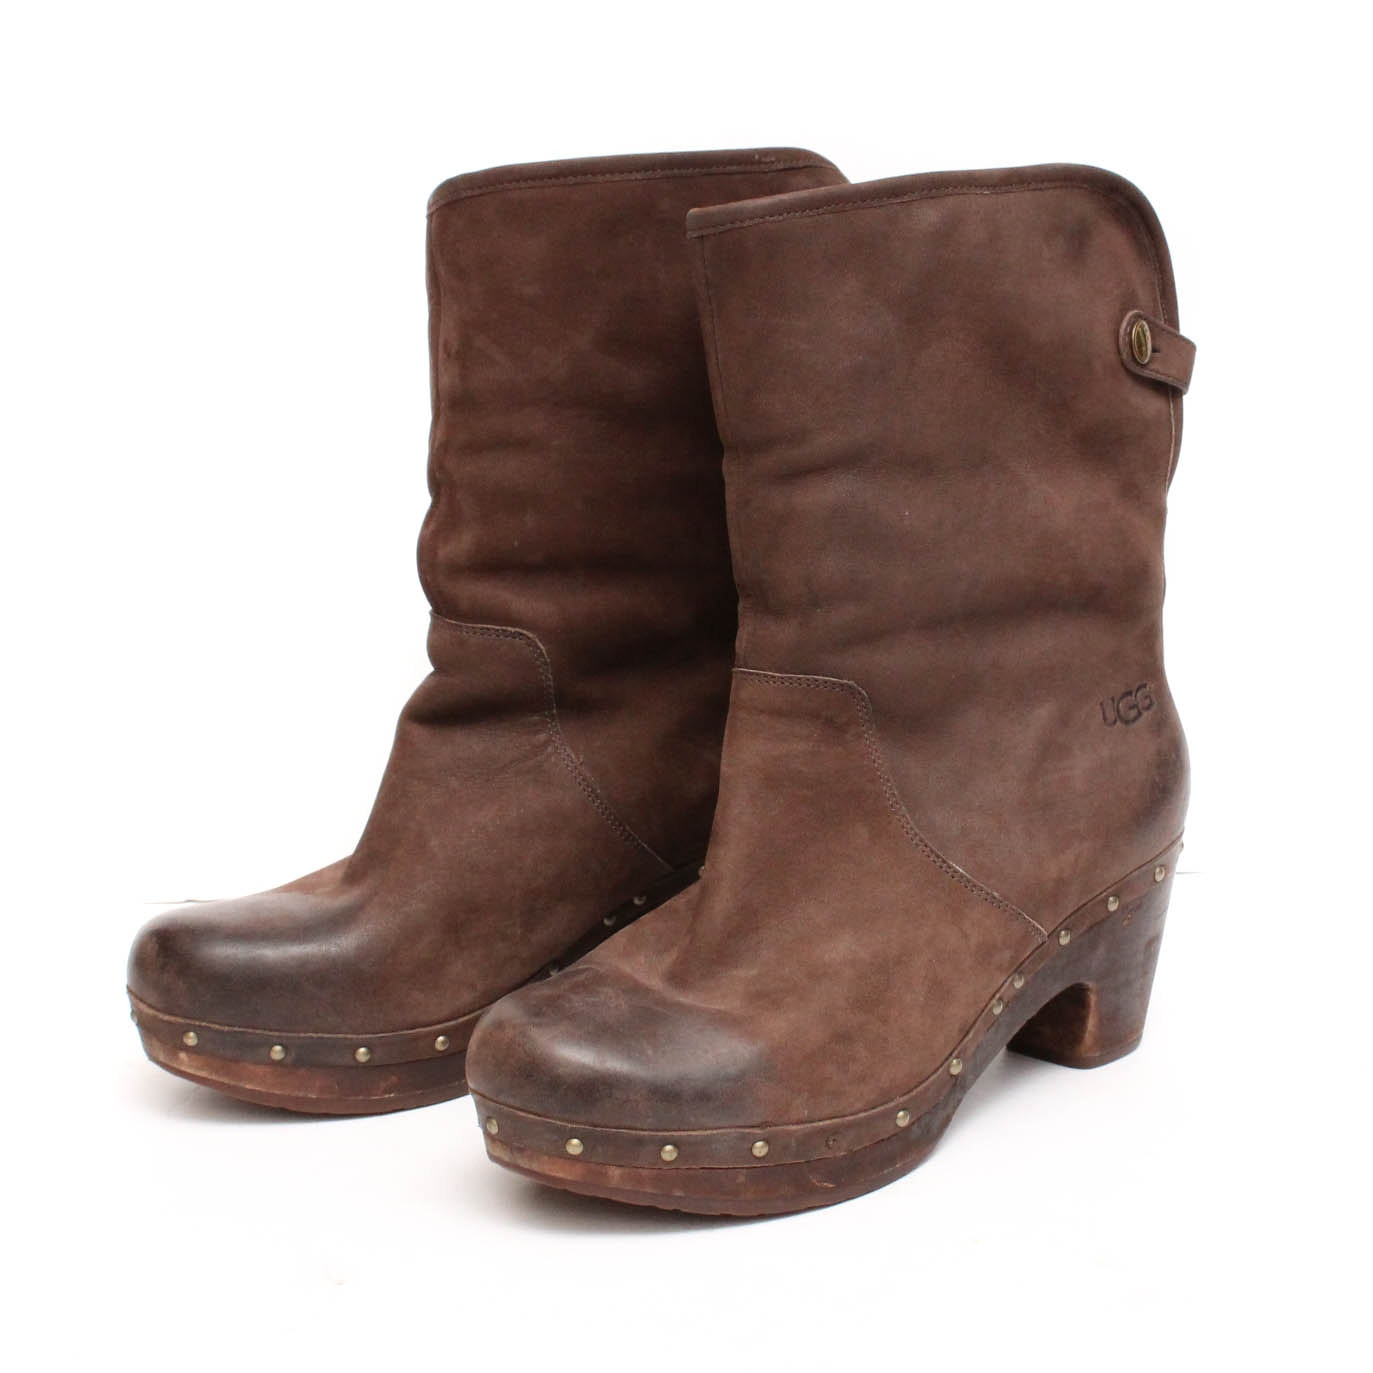 Ugg Lynnea Brown Suede and Shearling Convertible Boots